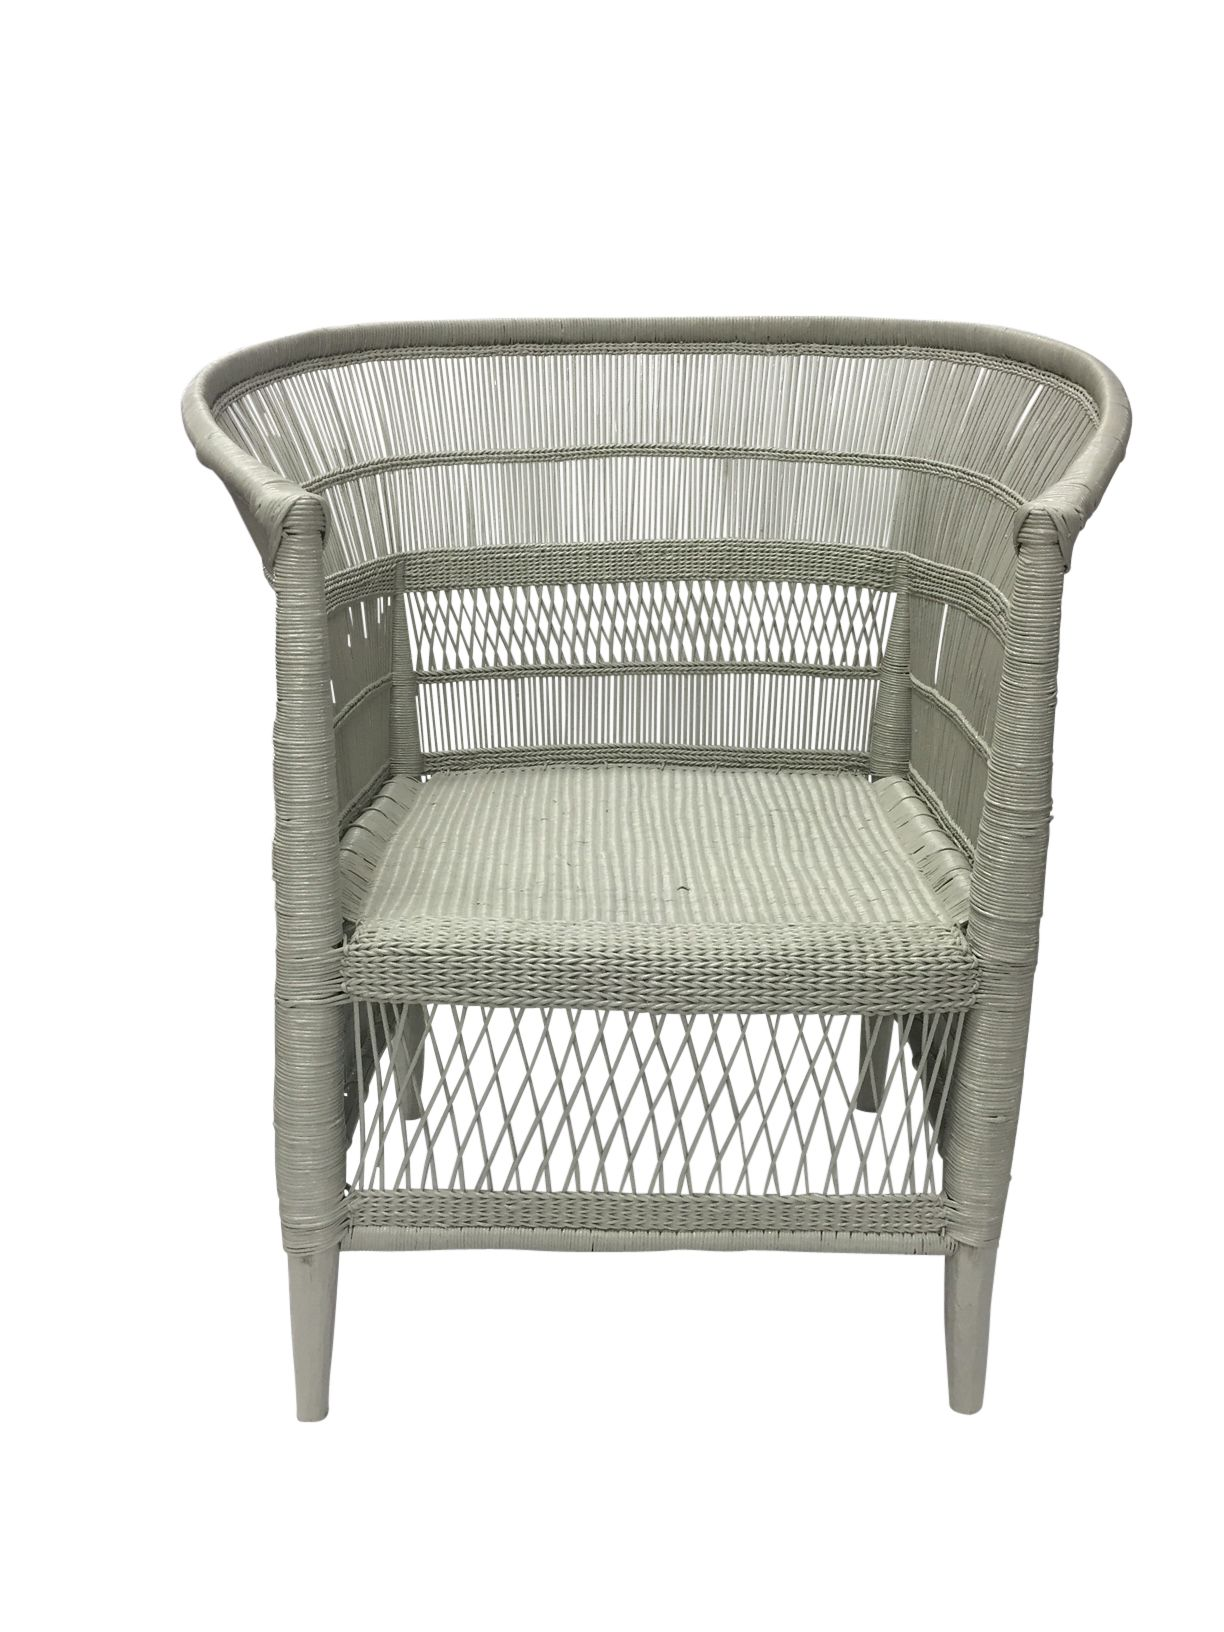 Malawi Cane Chair Grey Interior Secrets White Leather Dining